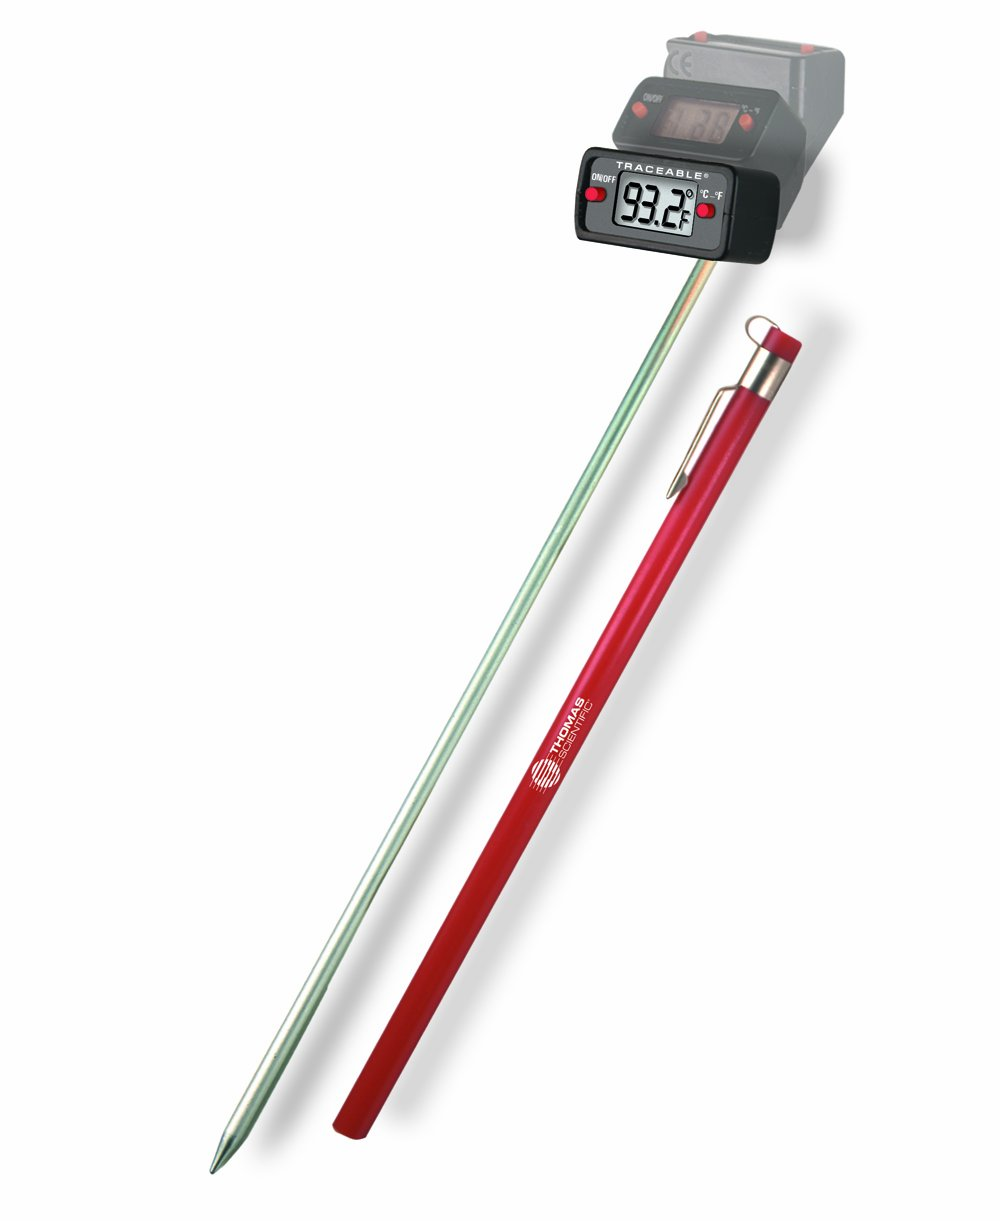 Thomas Traceable Ultra Robo Thermometer, 8'' Stem, -50 to 280 degree C, -58 to 536 degree F